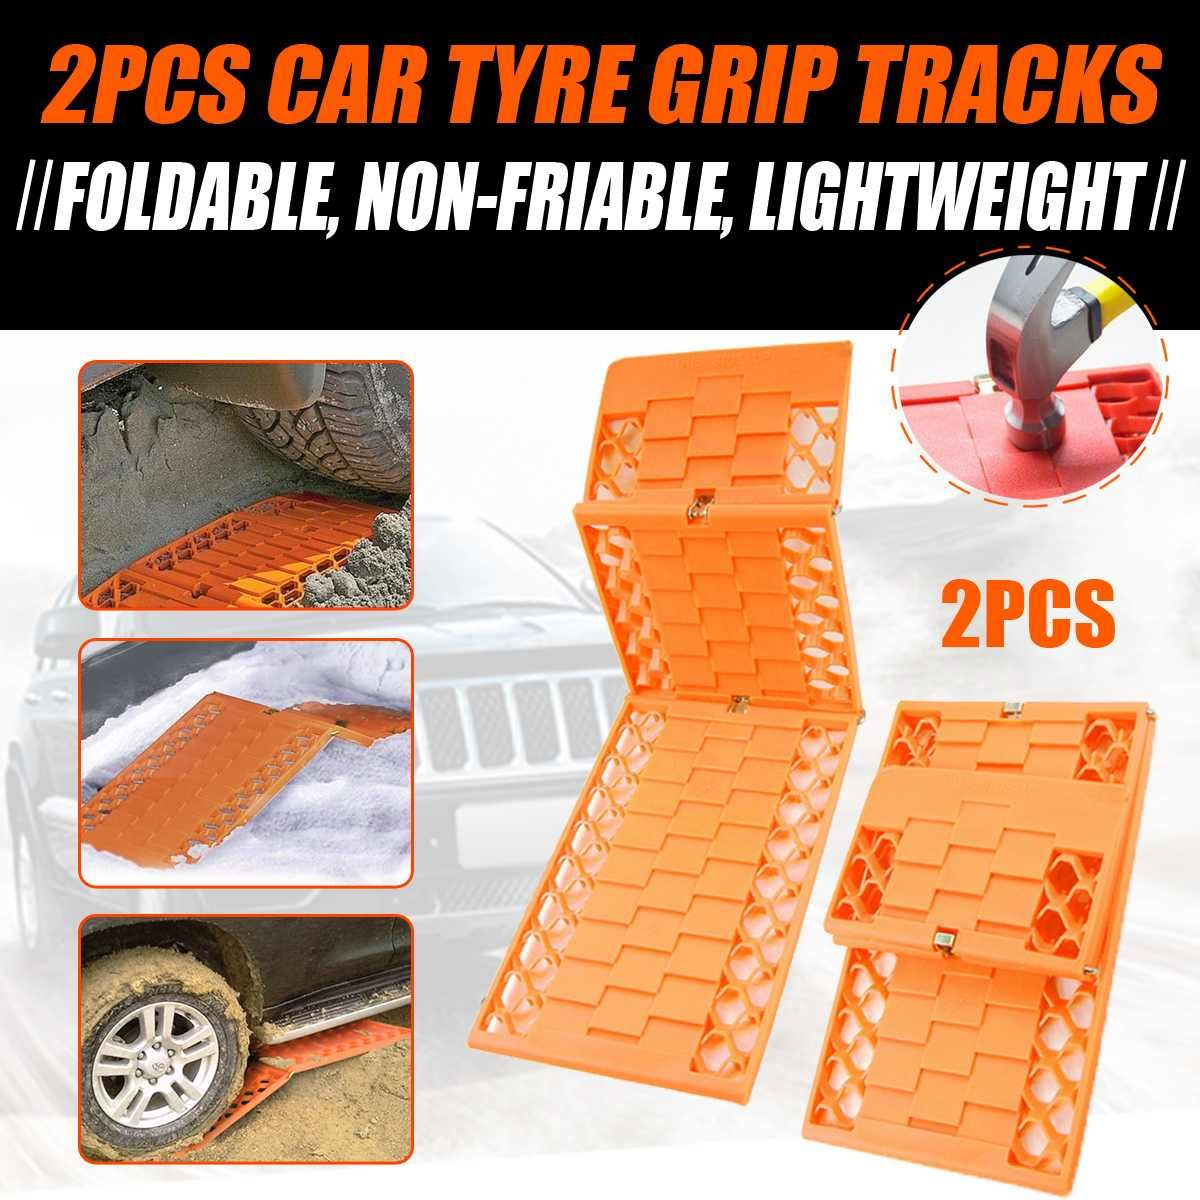 2Pcs/Set Tyre Grip Tracks Car Security Snow Mud Sand Rescue Escaper Traction Tracks Mats Folding Rubber Car Rescue Mats